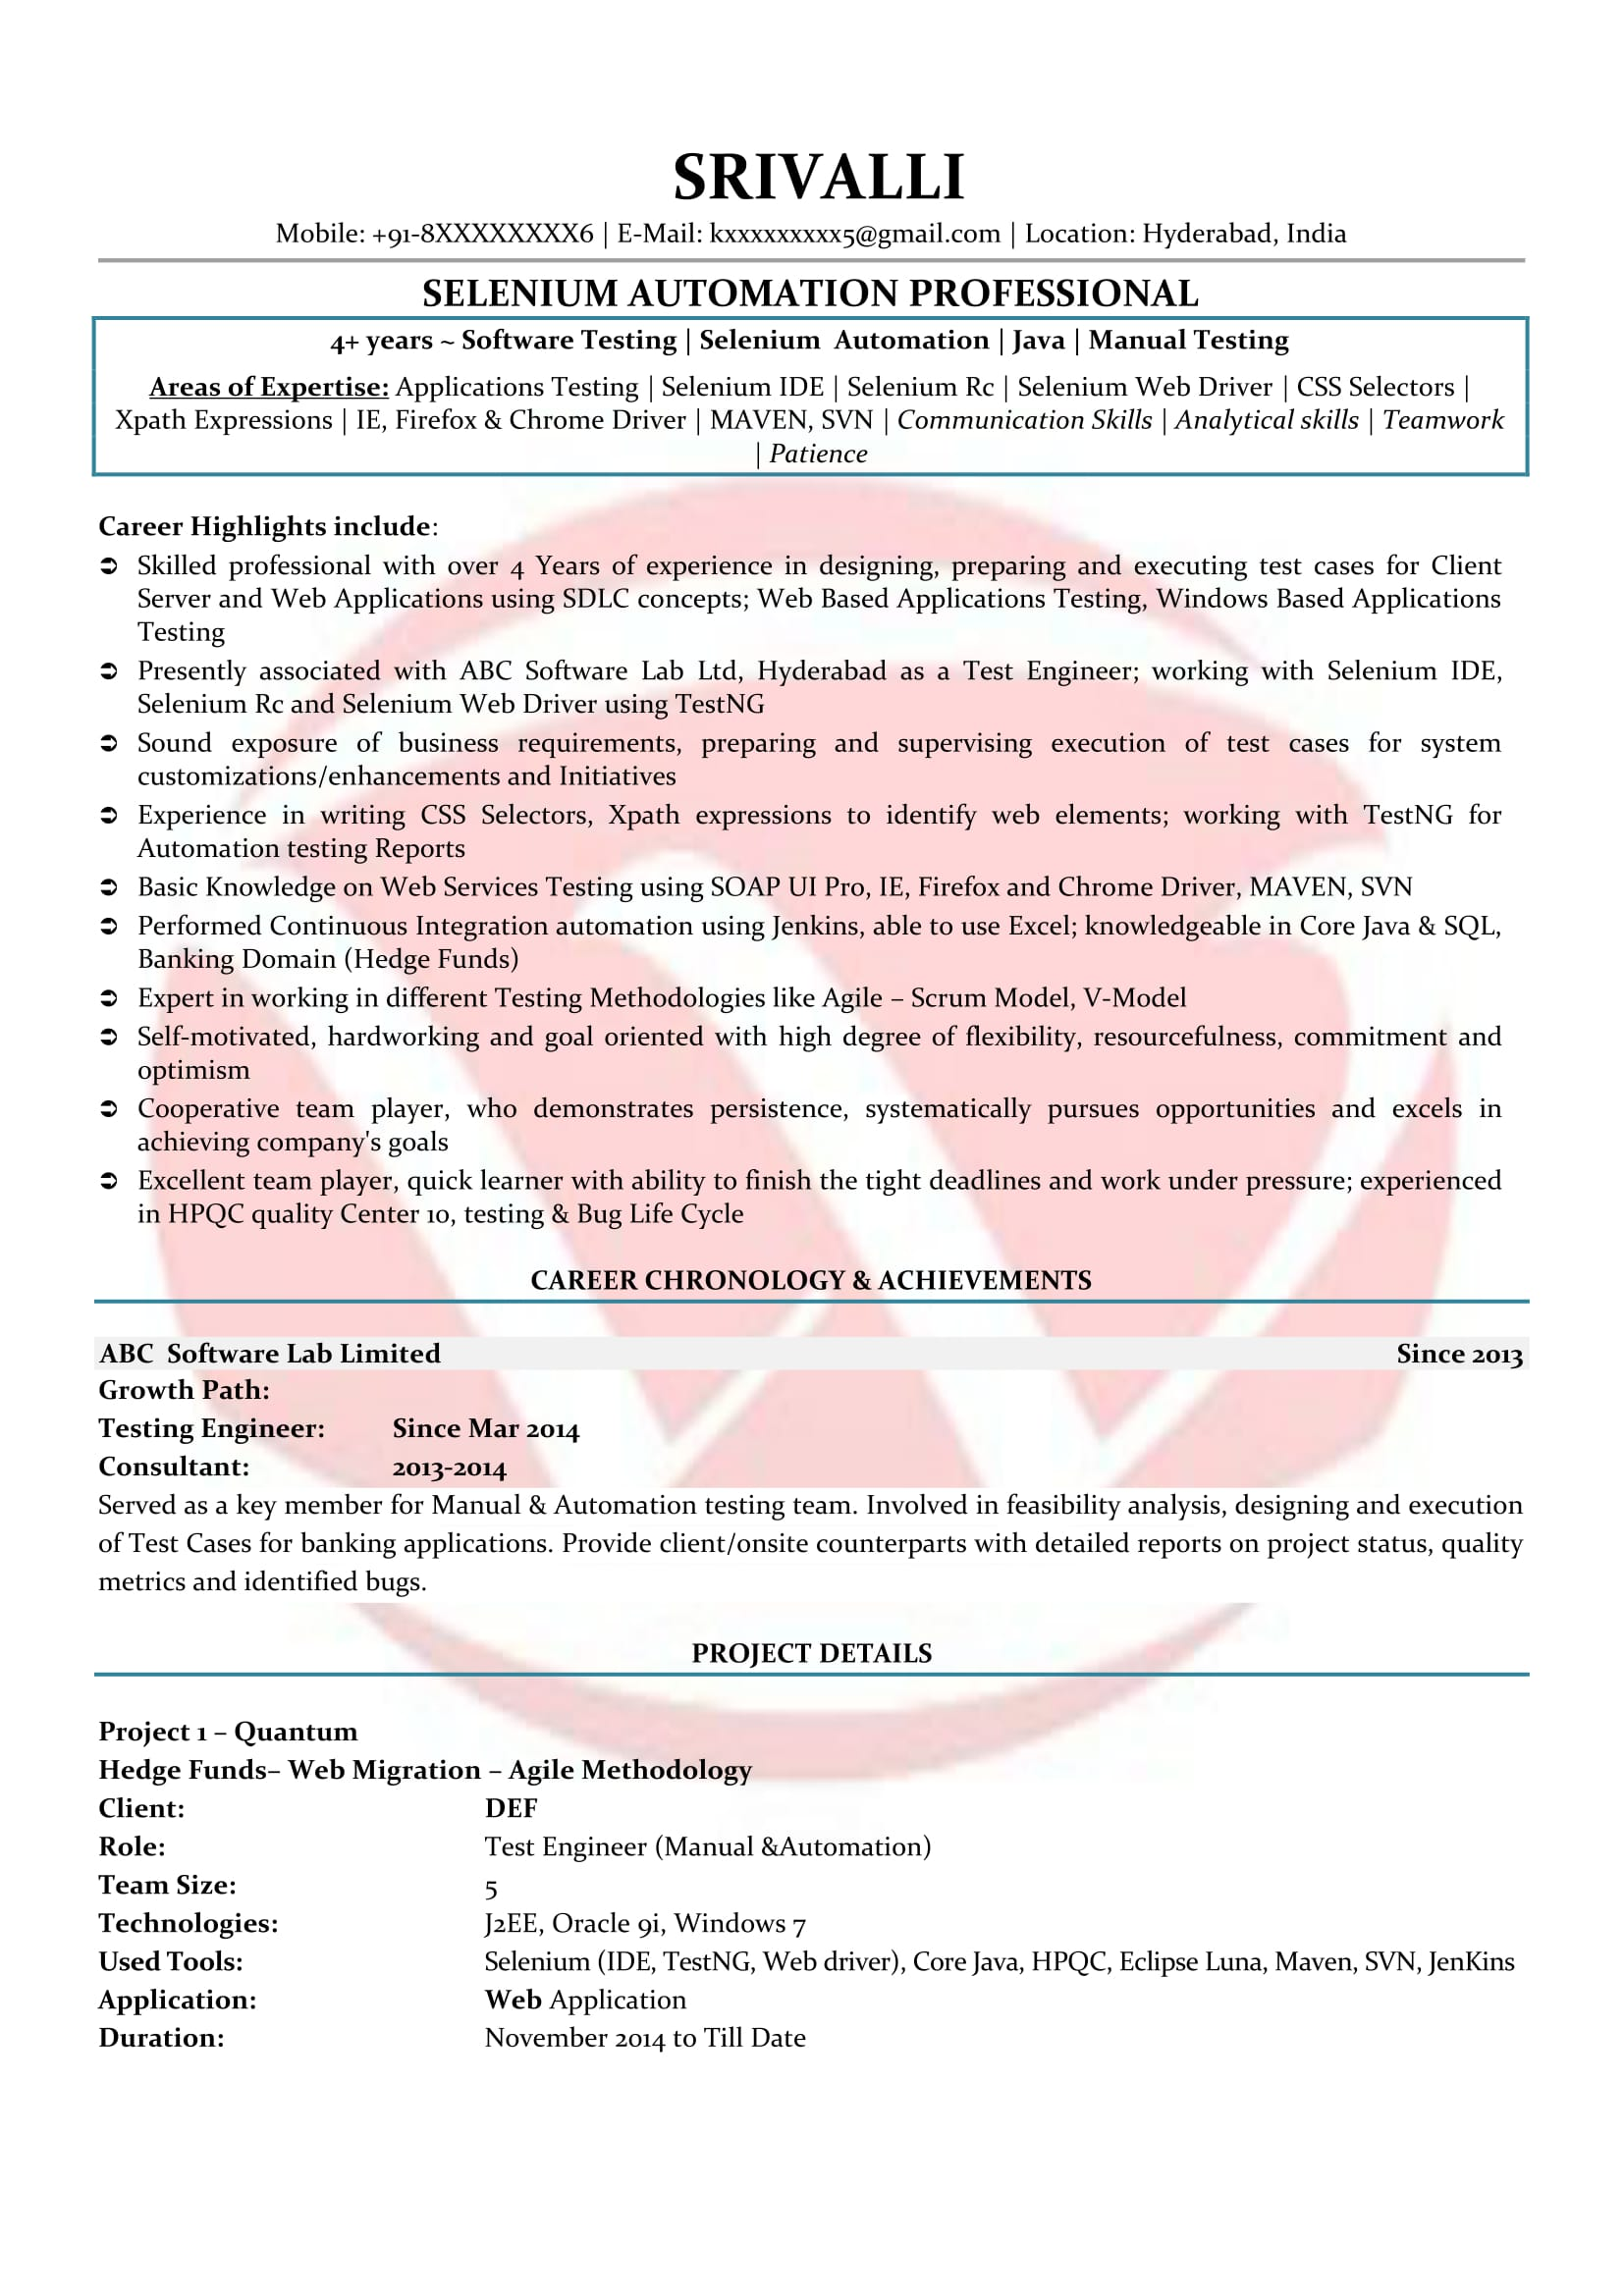 selenium sample resumes resume format templates testing for years experience ionic Resume Selenium Testing Resume For 2 Years Experience